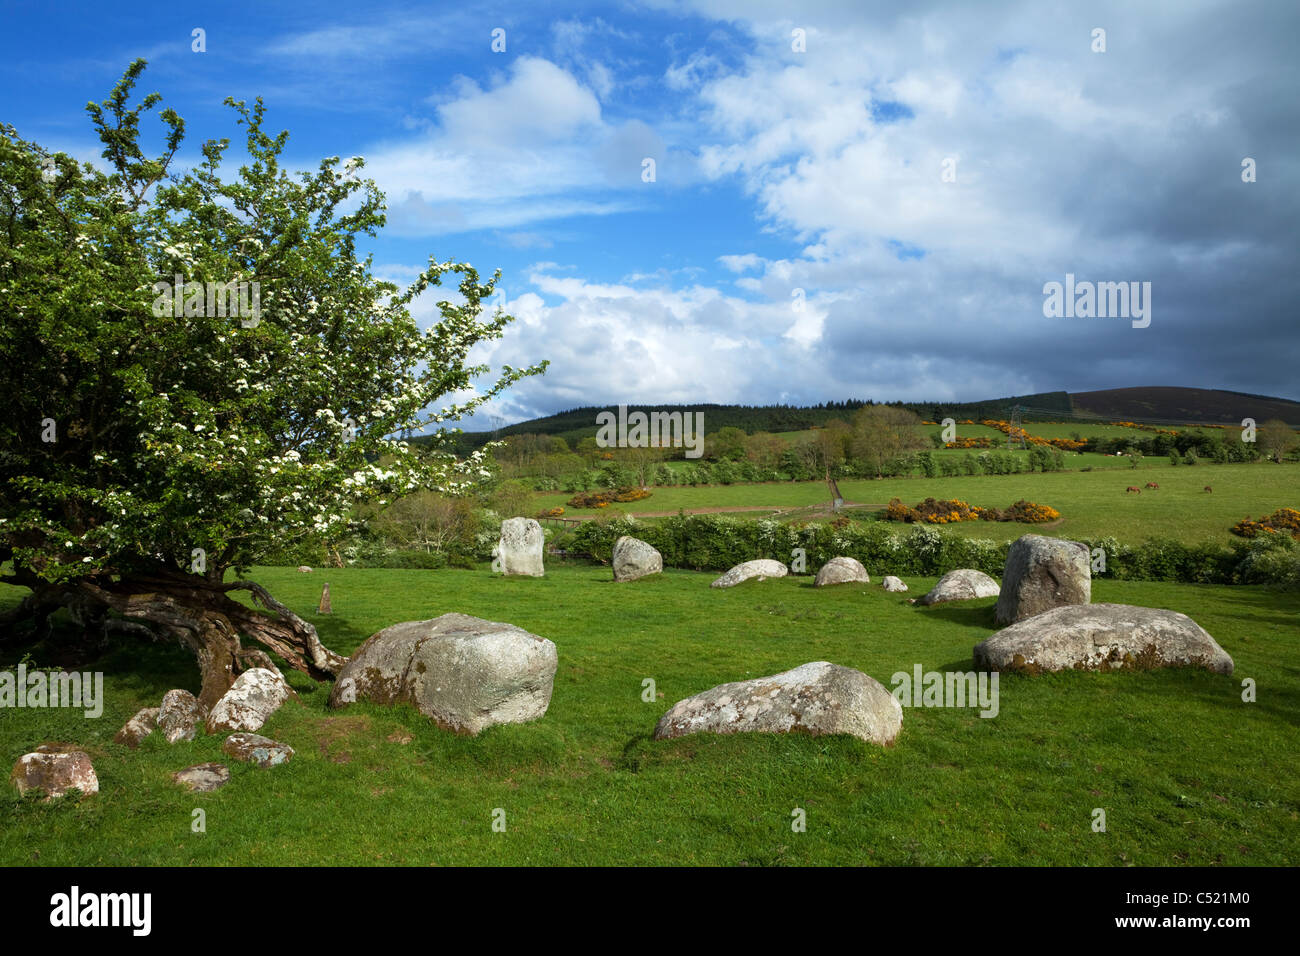 The Piper's Stones or Athgreany stone circle (1400-800 BC) is a bronze age stone circle of 16 Granite Boulders - Stock Image